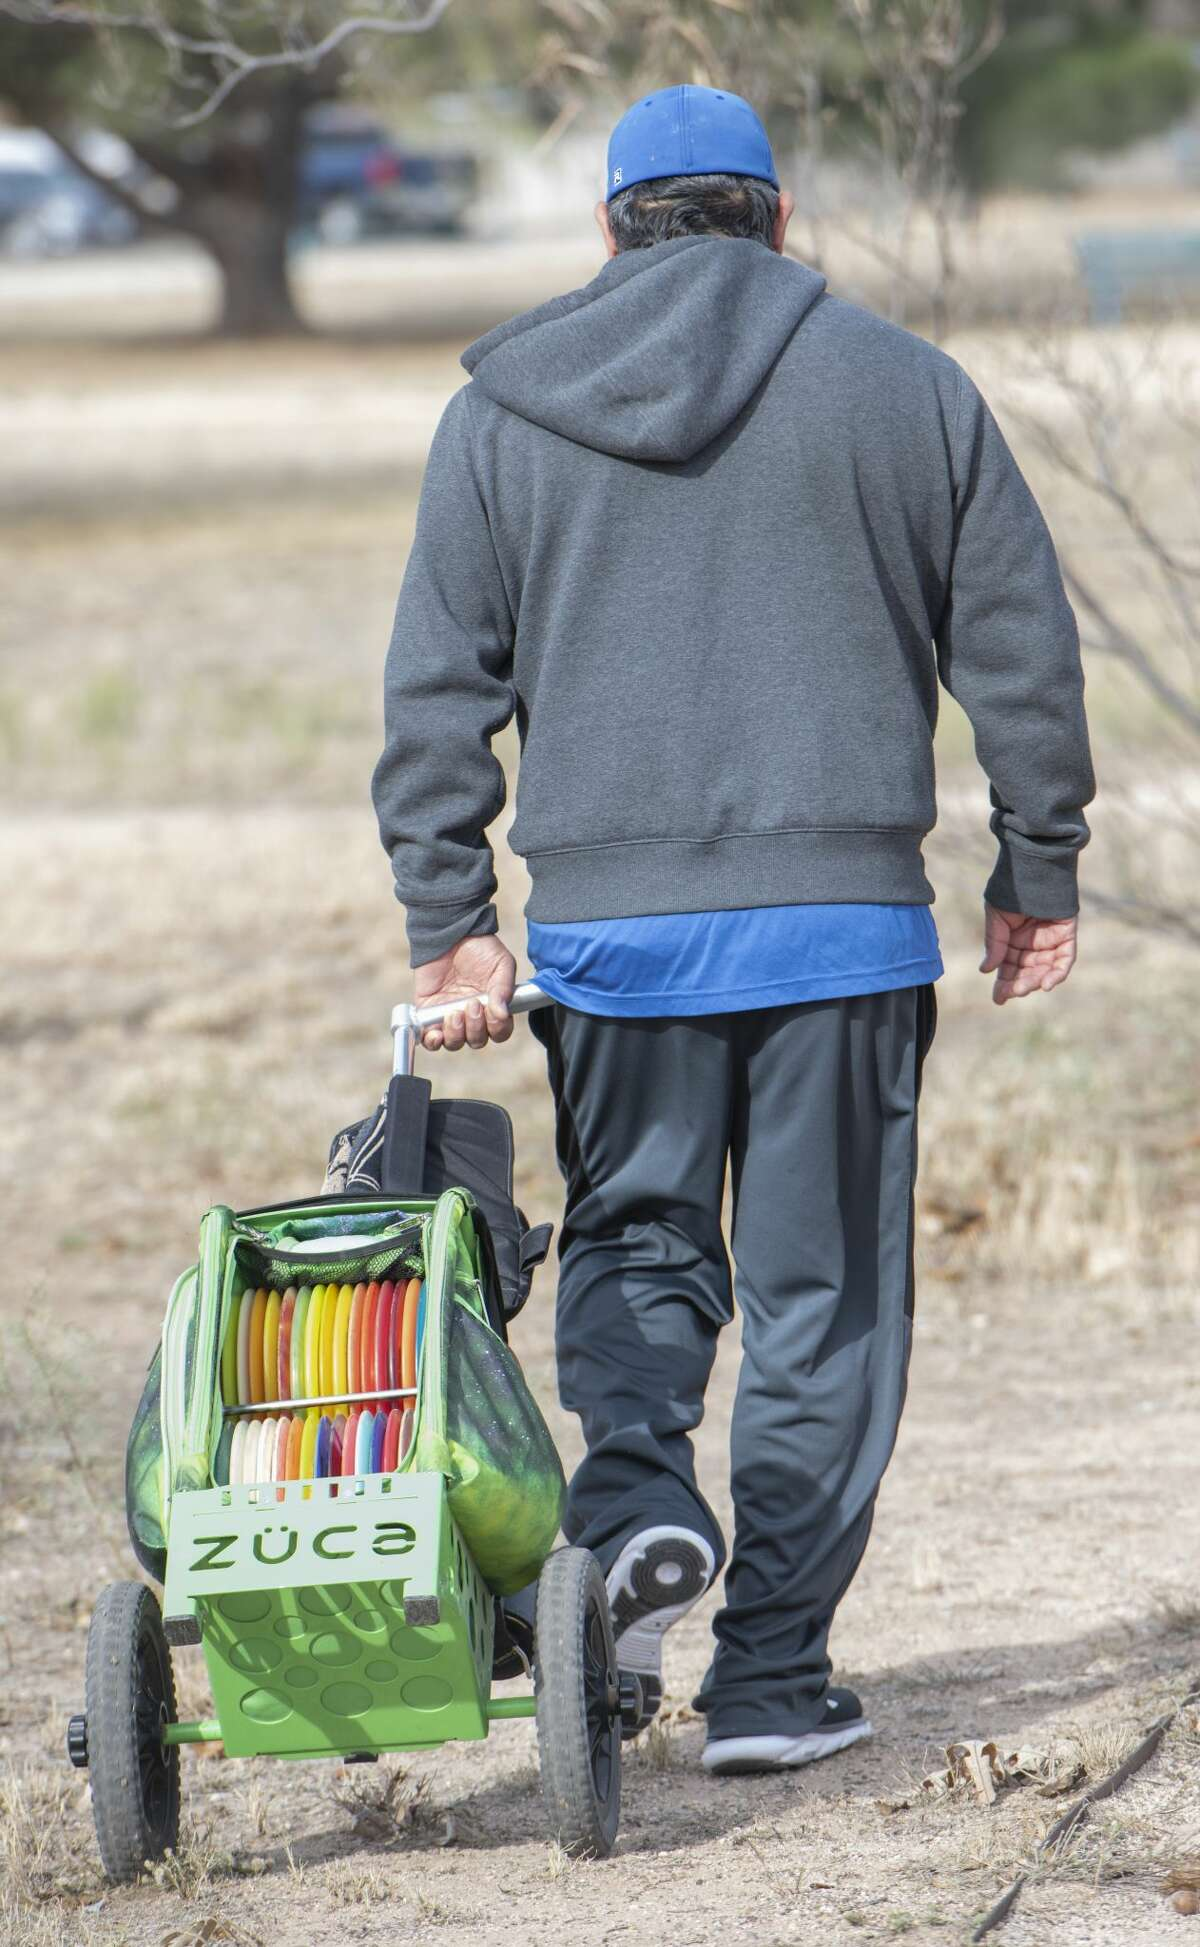 Angel Acosta, like many others, carries his varying discs in a pull behind so he has just the right one available for each shot 11/16/19 at the 8th annual Oilfield Blowout Low Putt Disc Golf Tournament at Windlands Park. Tim Fischer/Reporter-Telegram